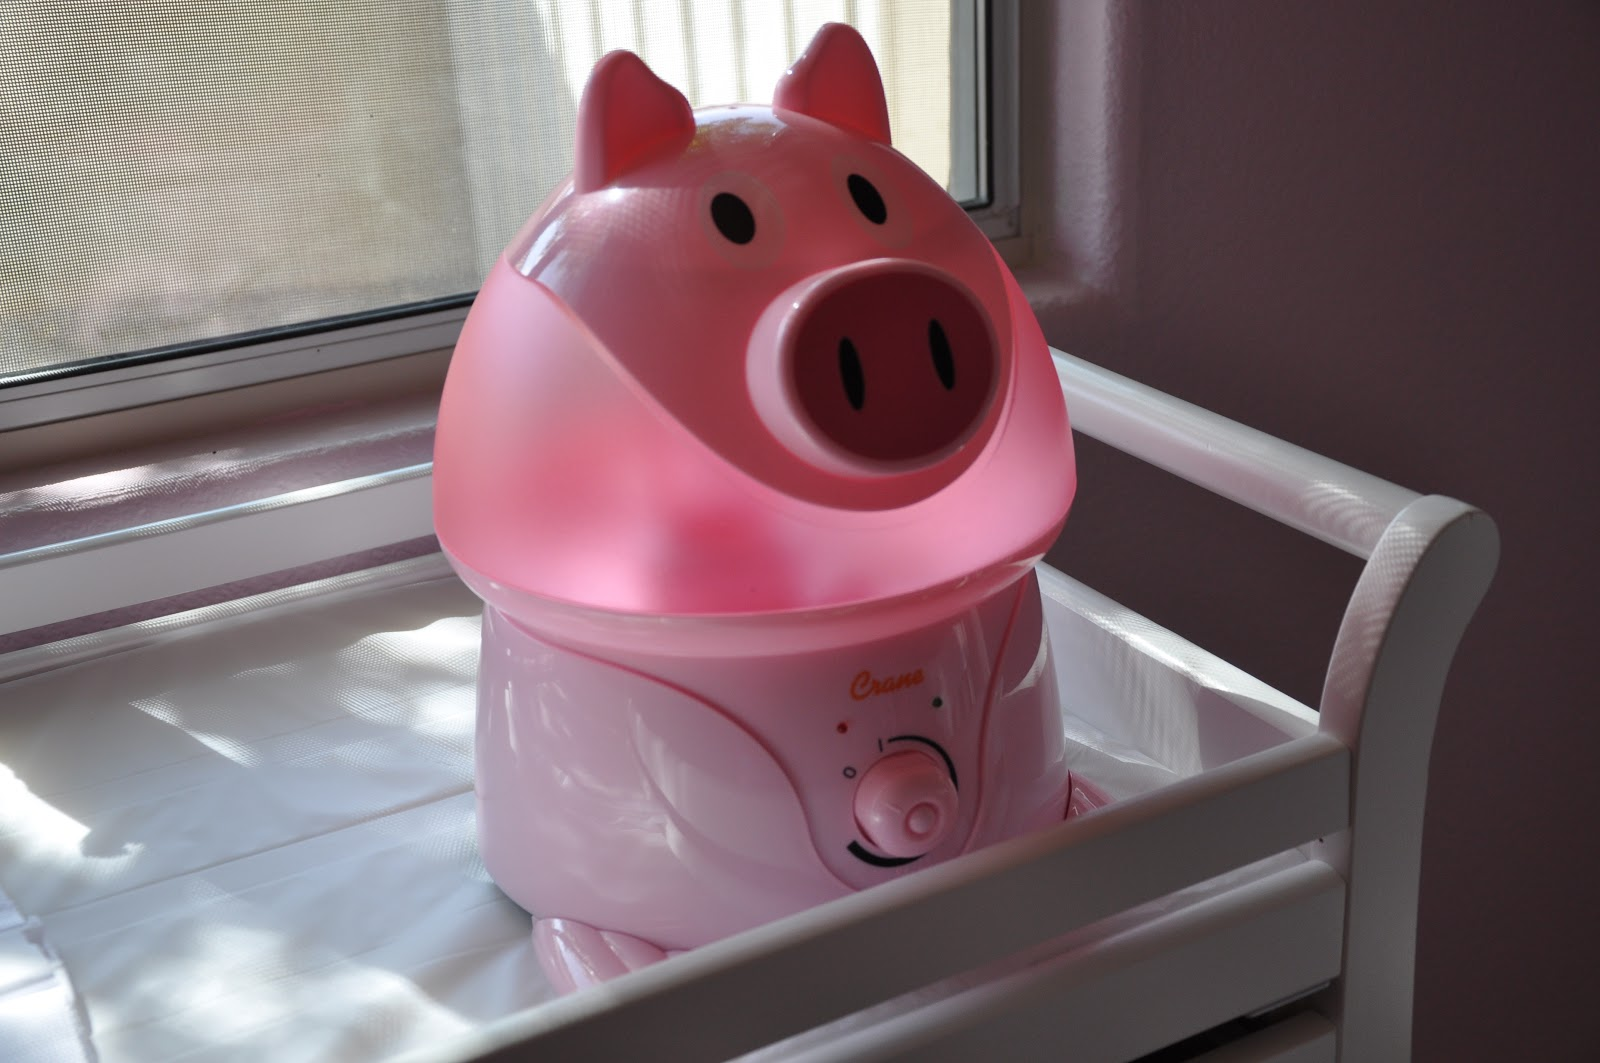 And yes Crane does sell an adorable Hello Kitty Humidifier however I  #753840